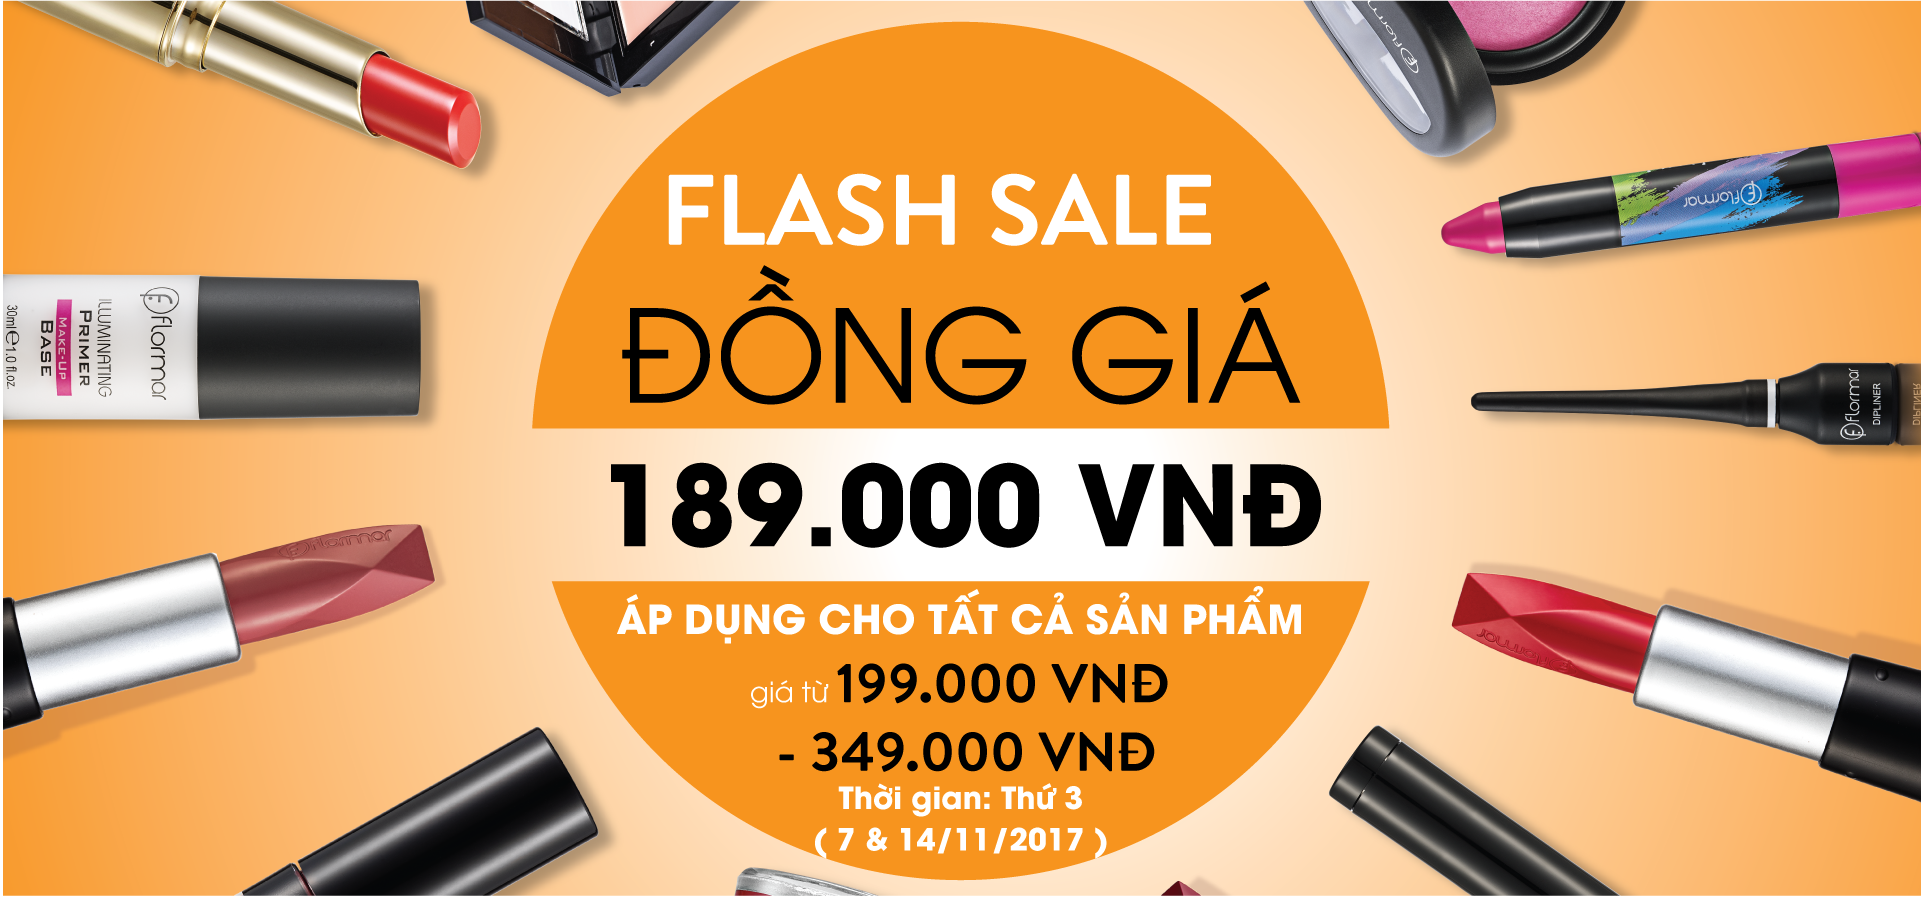 FLASH SALE WITH FLORMAR